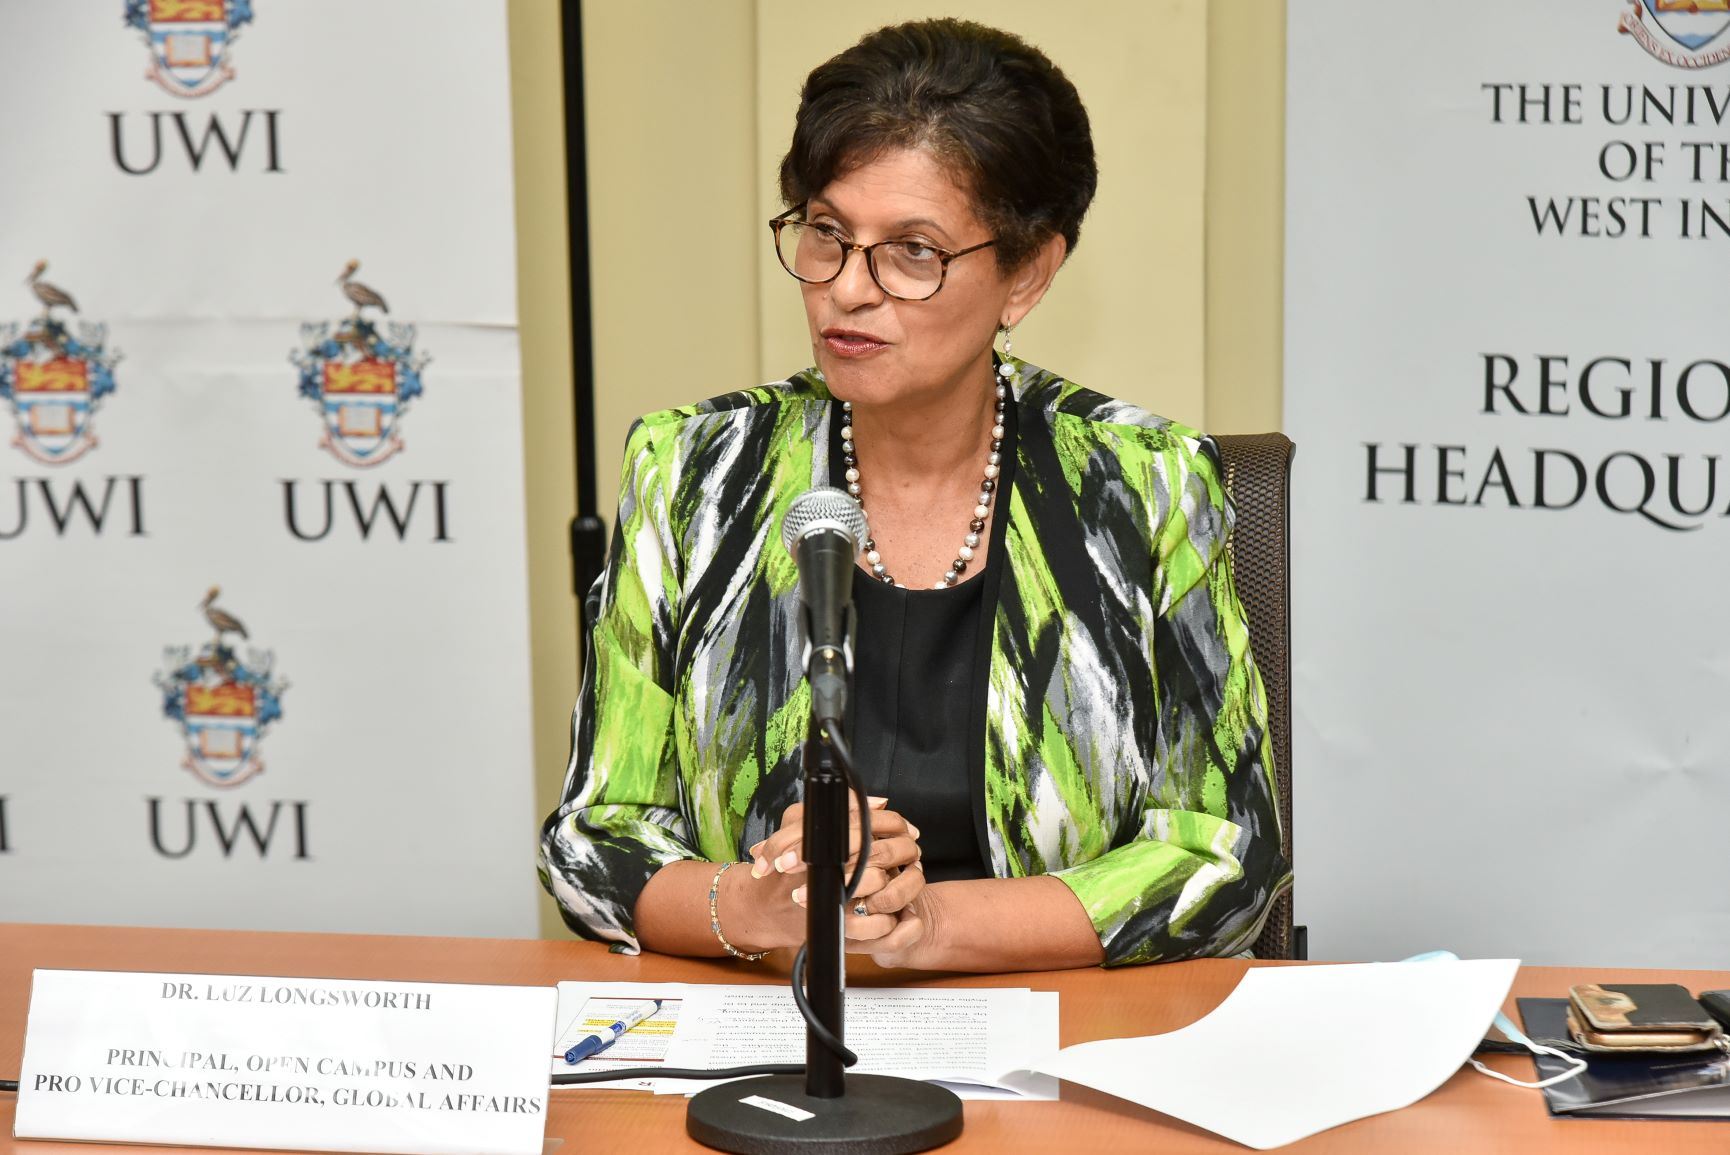 The UWI and University of St Martin sign MOU, marking historic solidarity in the Caribbean